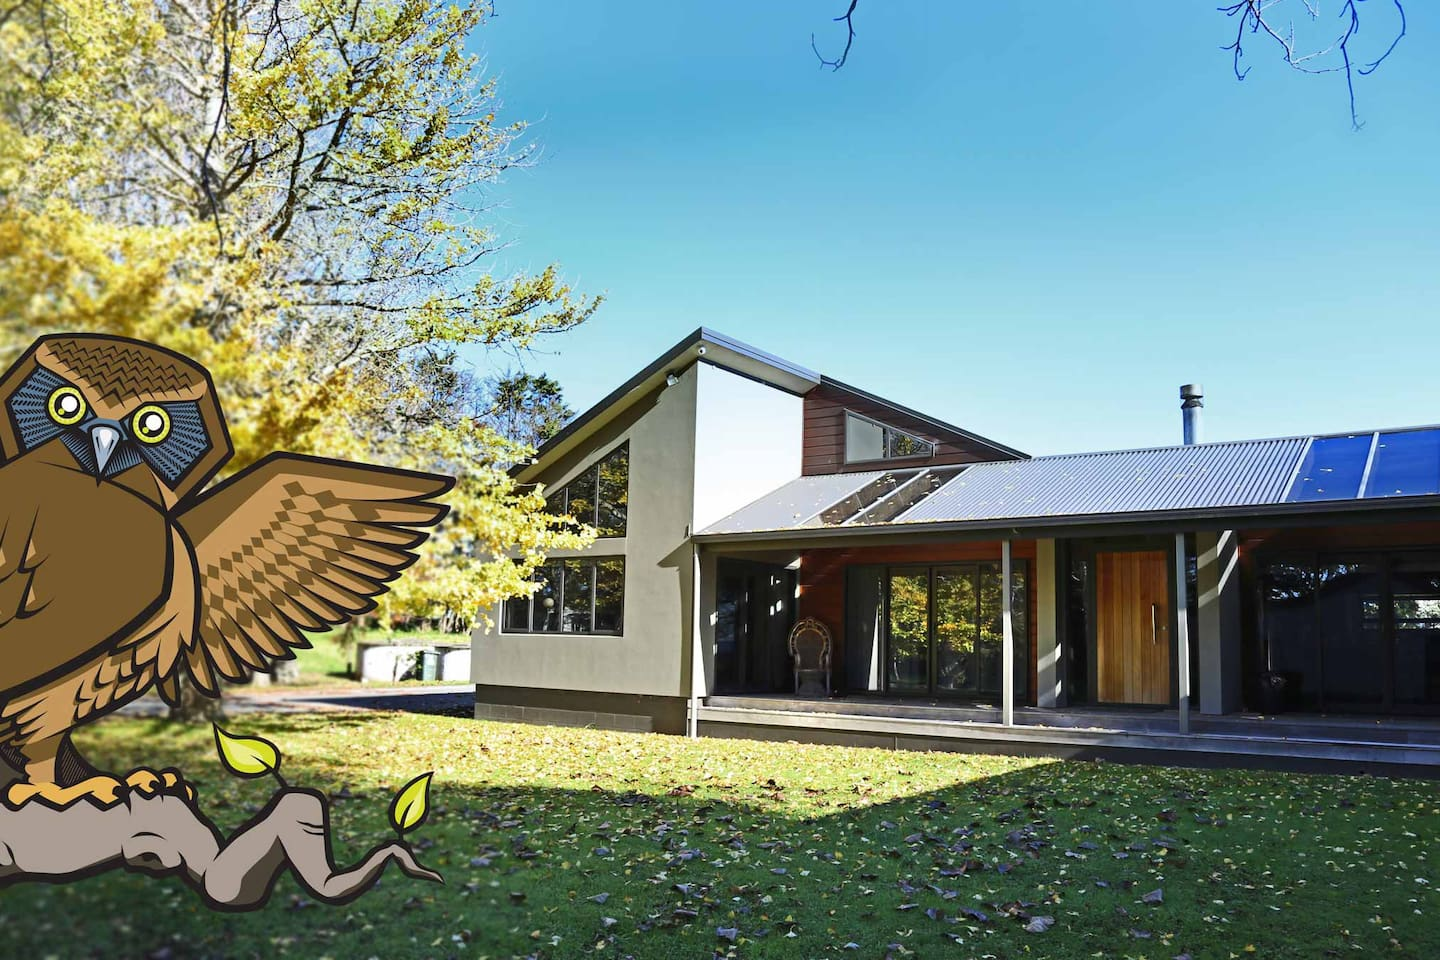 Taurangaruru  Bed & Breakfast - Waiuku, Auckland. Tauranga - is the meeting or resting place of the morpork (owl)  Ruru - is the owl  Waiukubnb  Only 45 mins from the Auckland Airport